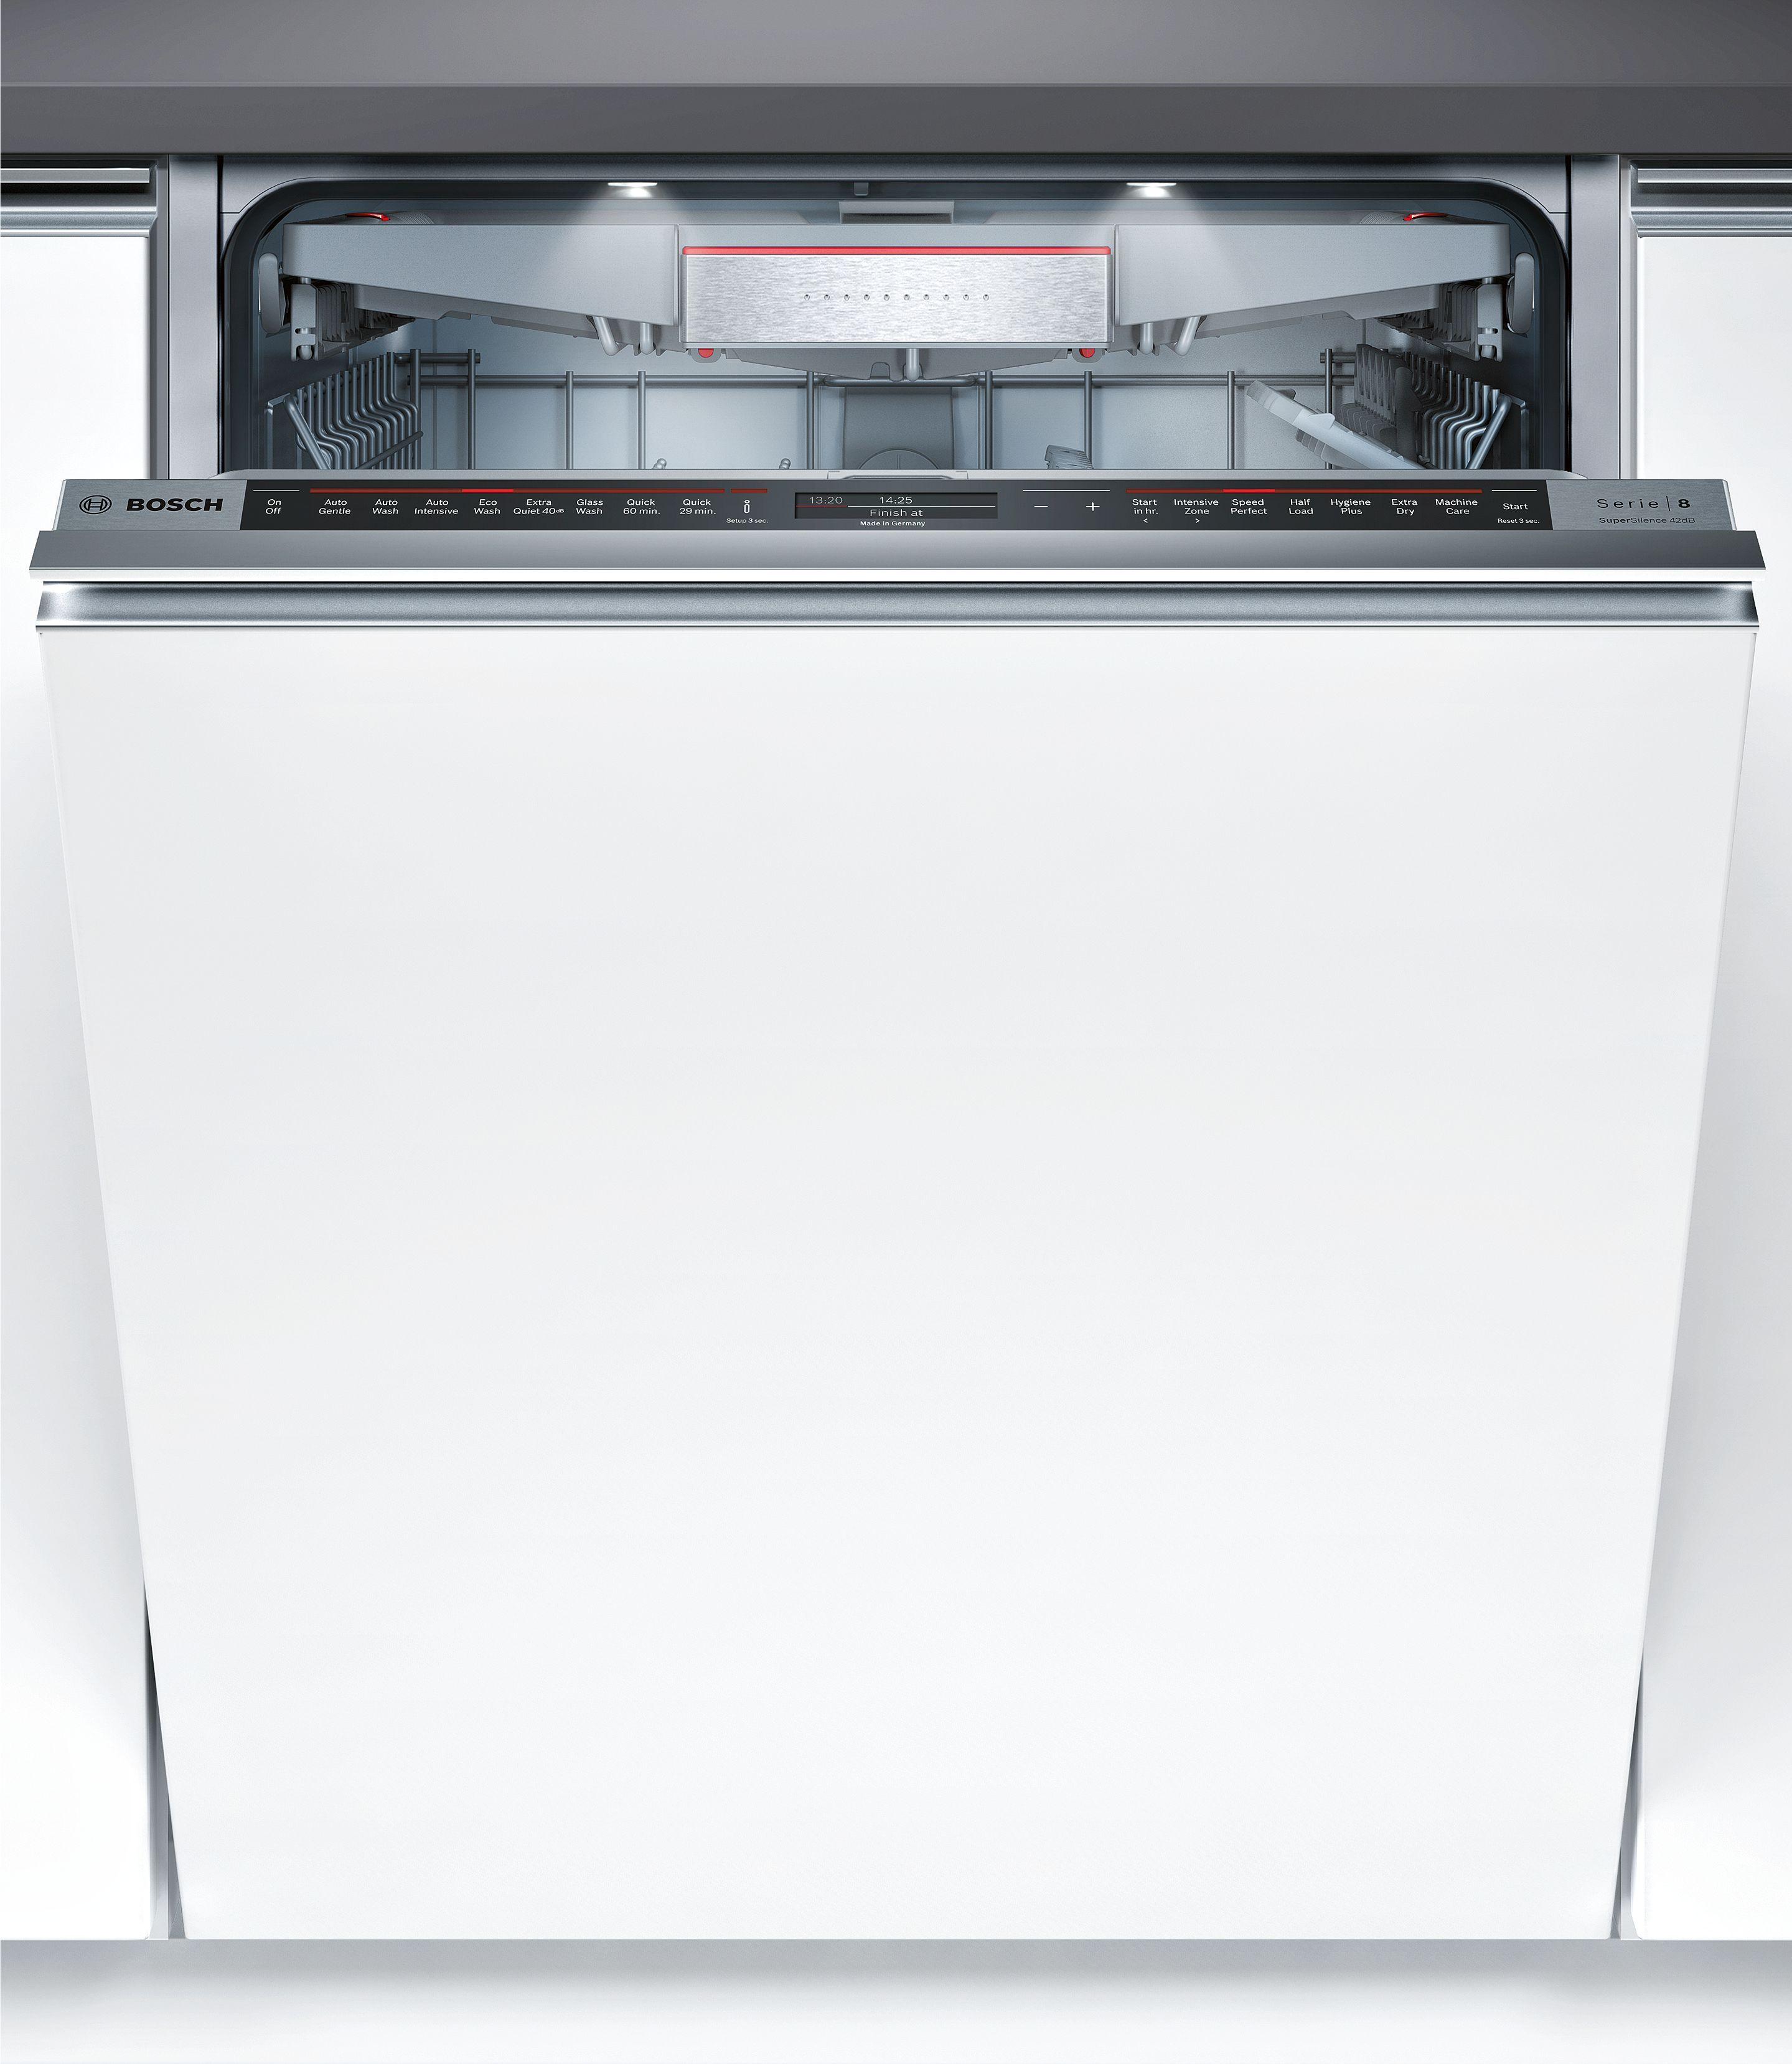 Bosch Serie 8 Fully Integrated Dishwasher 60cm H 815 875mm W 598 Mm D 550 Mm Integrated Dishwasher Fully Integrated Dishwasher Built In Dishwasher